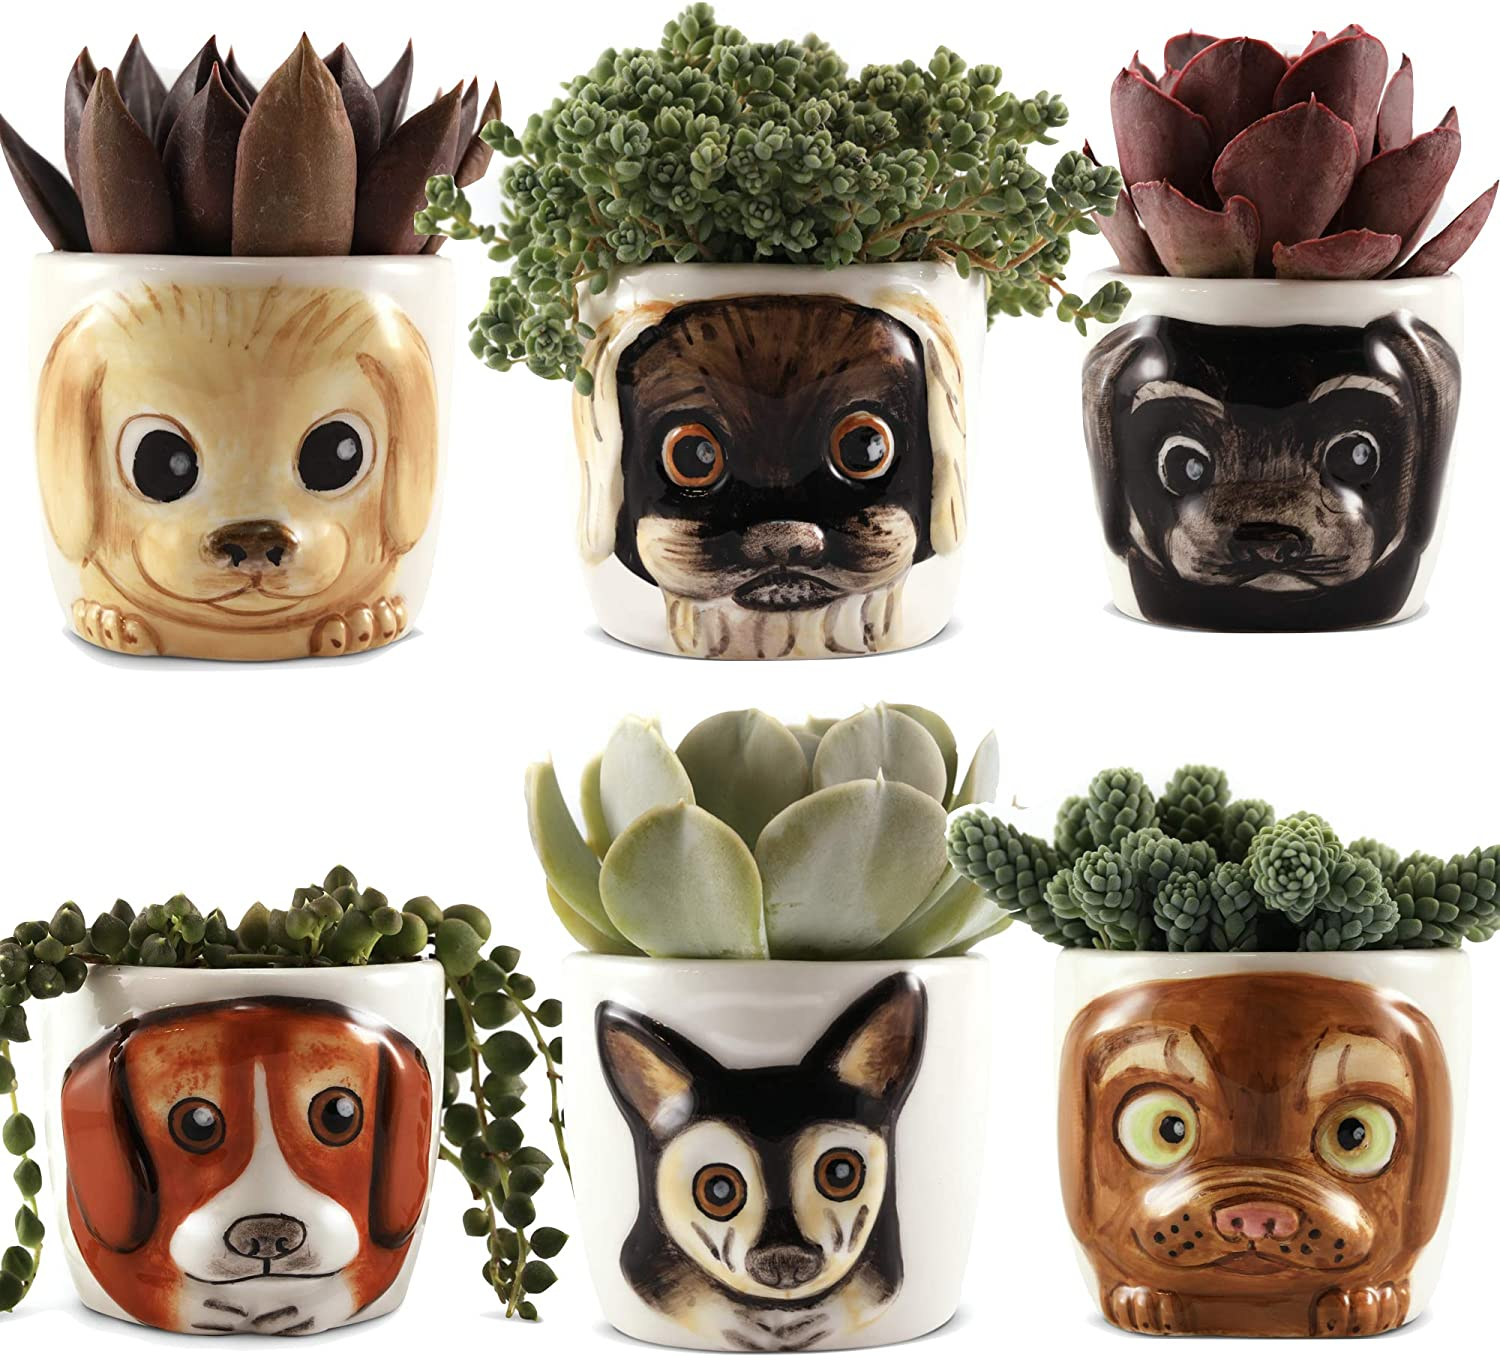 Window Garden Animal Planters - Small Succulent Puppy Pot Set of Six. Cute Decoration for Home Decor, Office Desk or Kitchen Windowsill. Dog Lover Dream Gift. for Women, Adults, Kids Moms Dad.